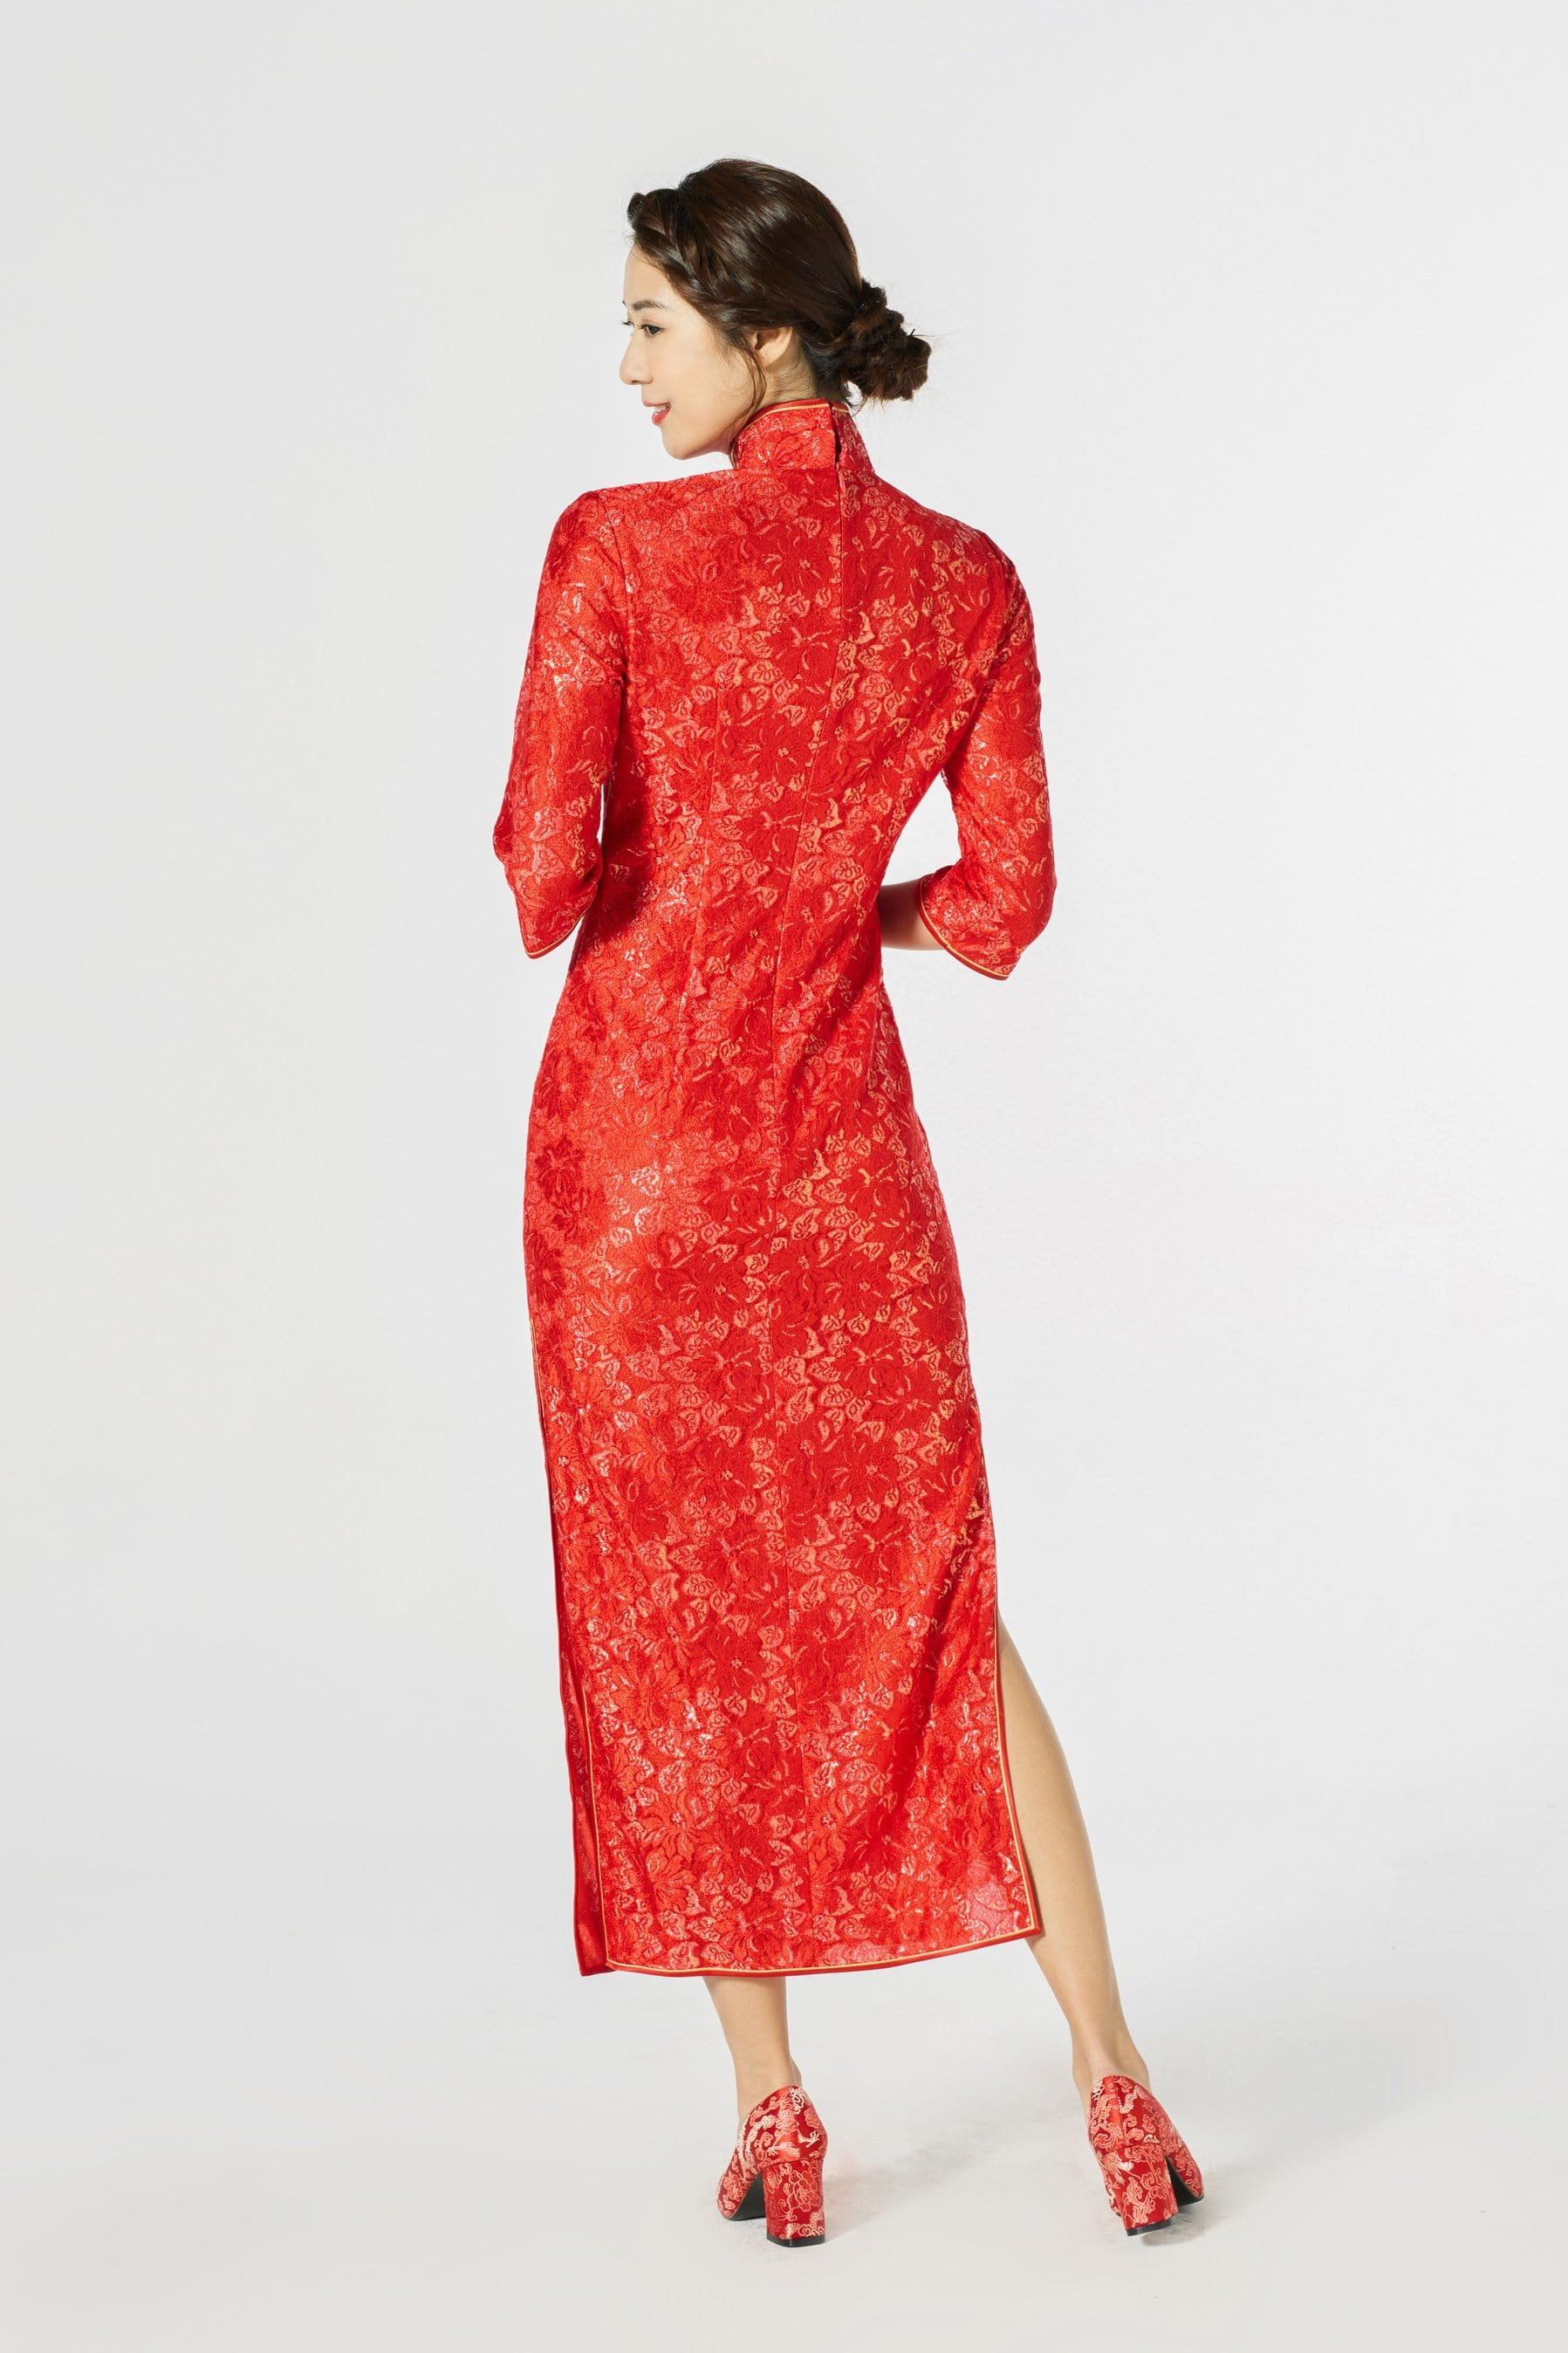 Vienna Bespoke Dress - Cheongsam - East Meets Dress